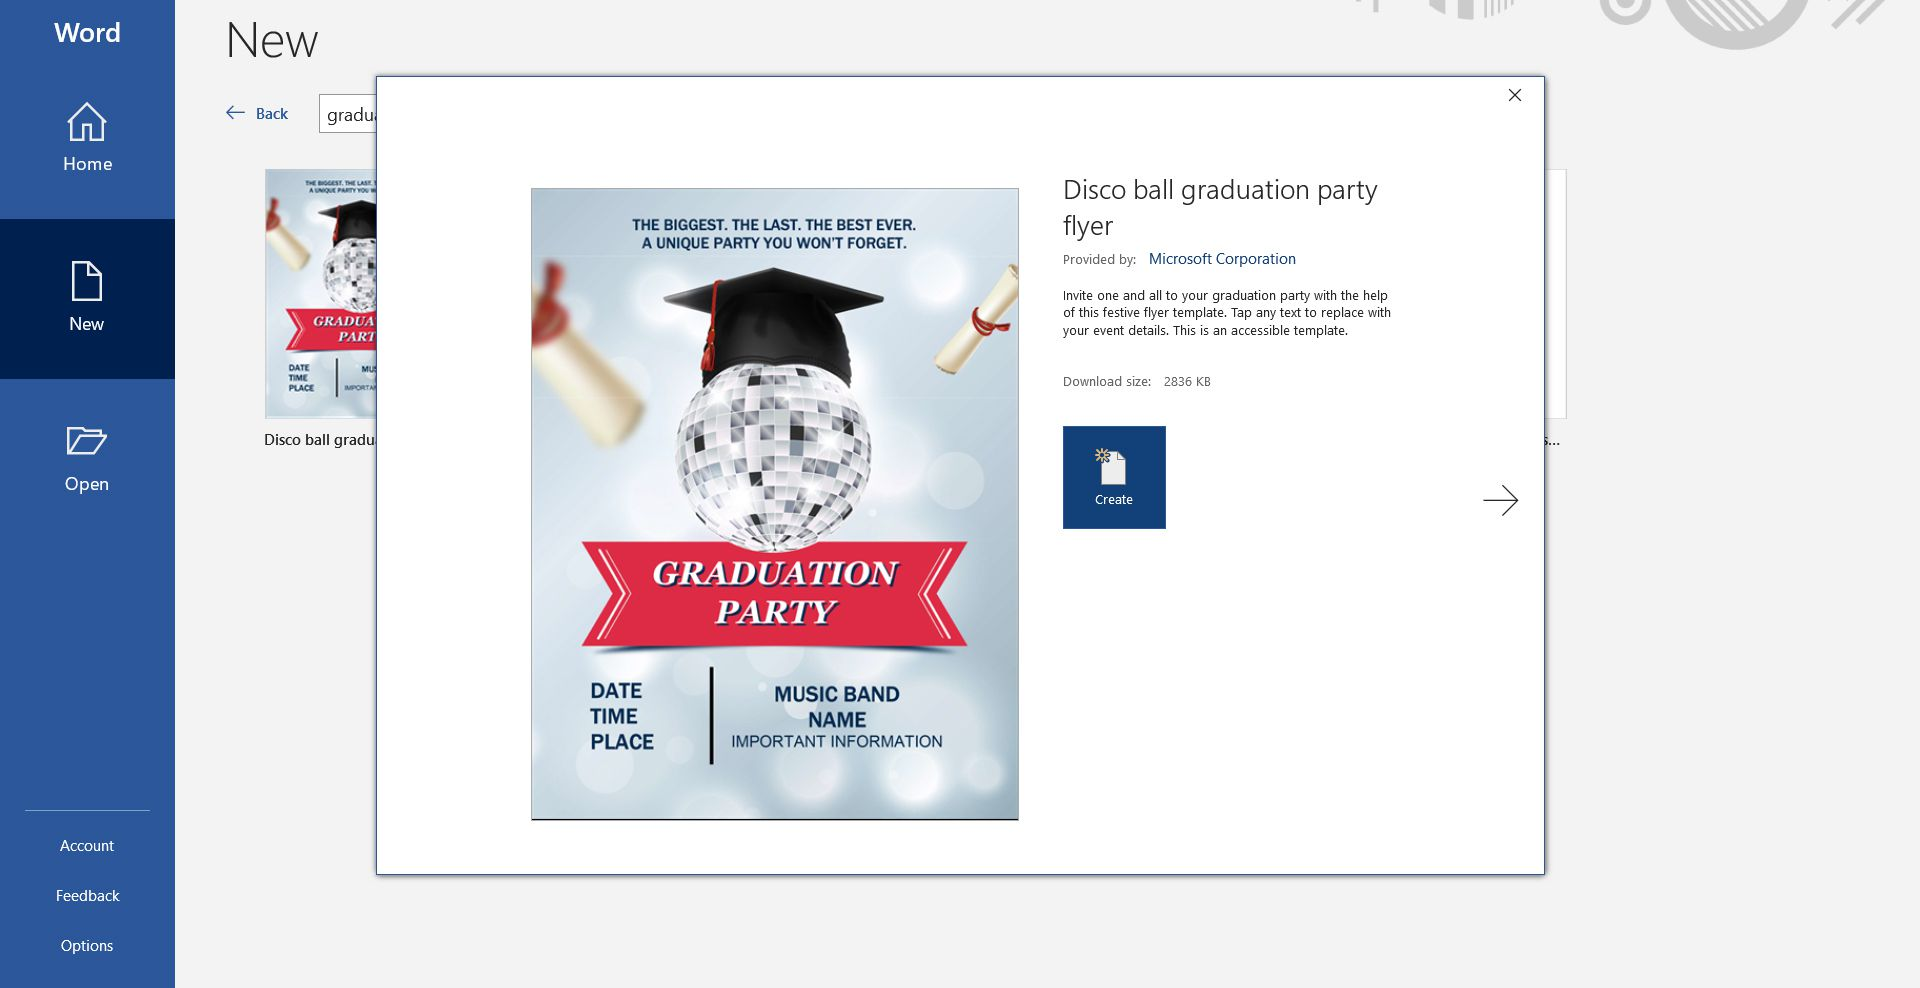 Disco ball-themed graduation party invitation template for Microsoft Word